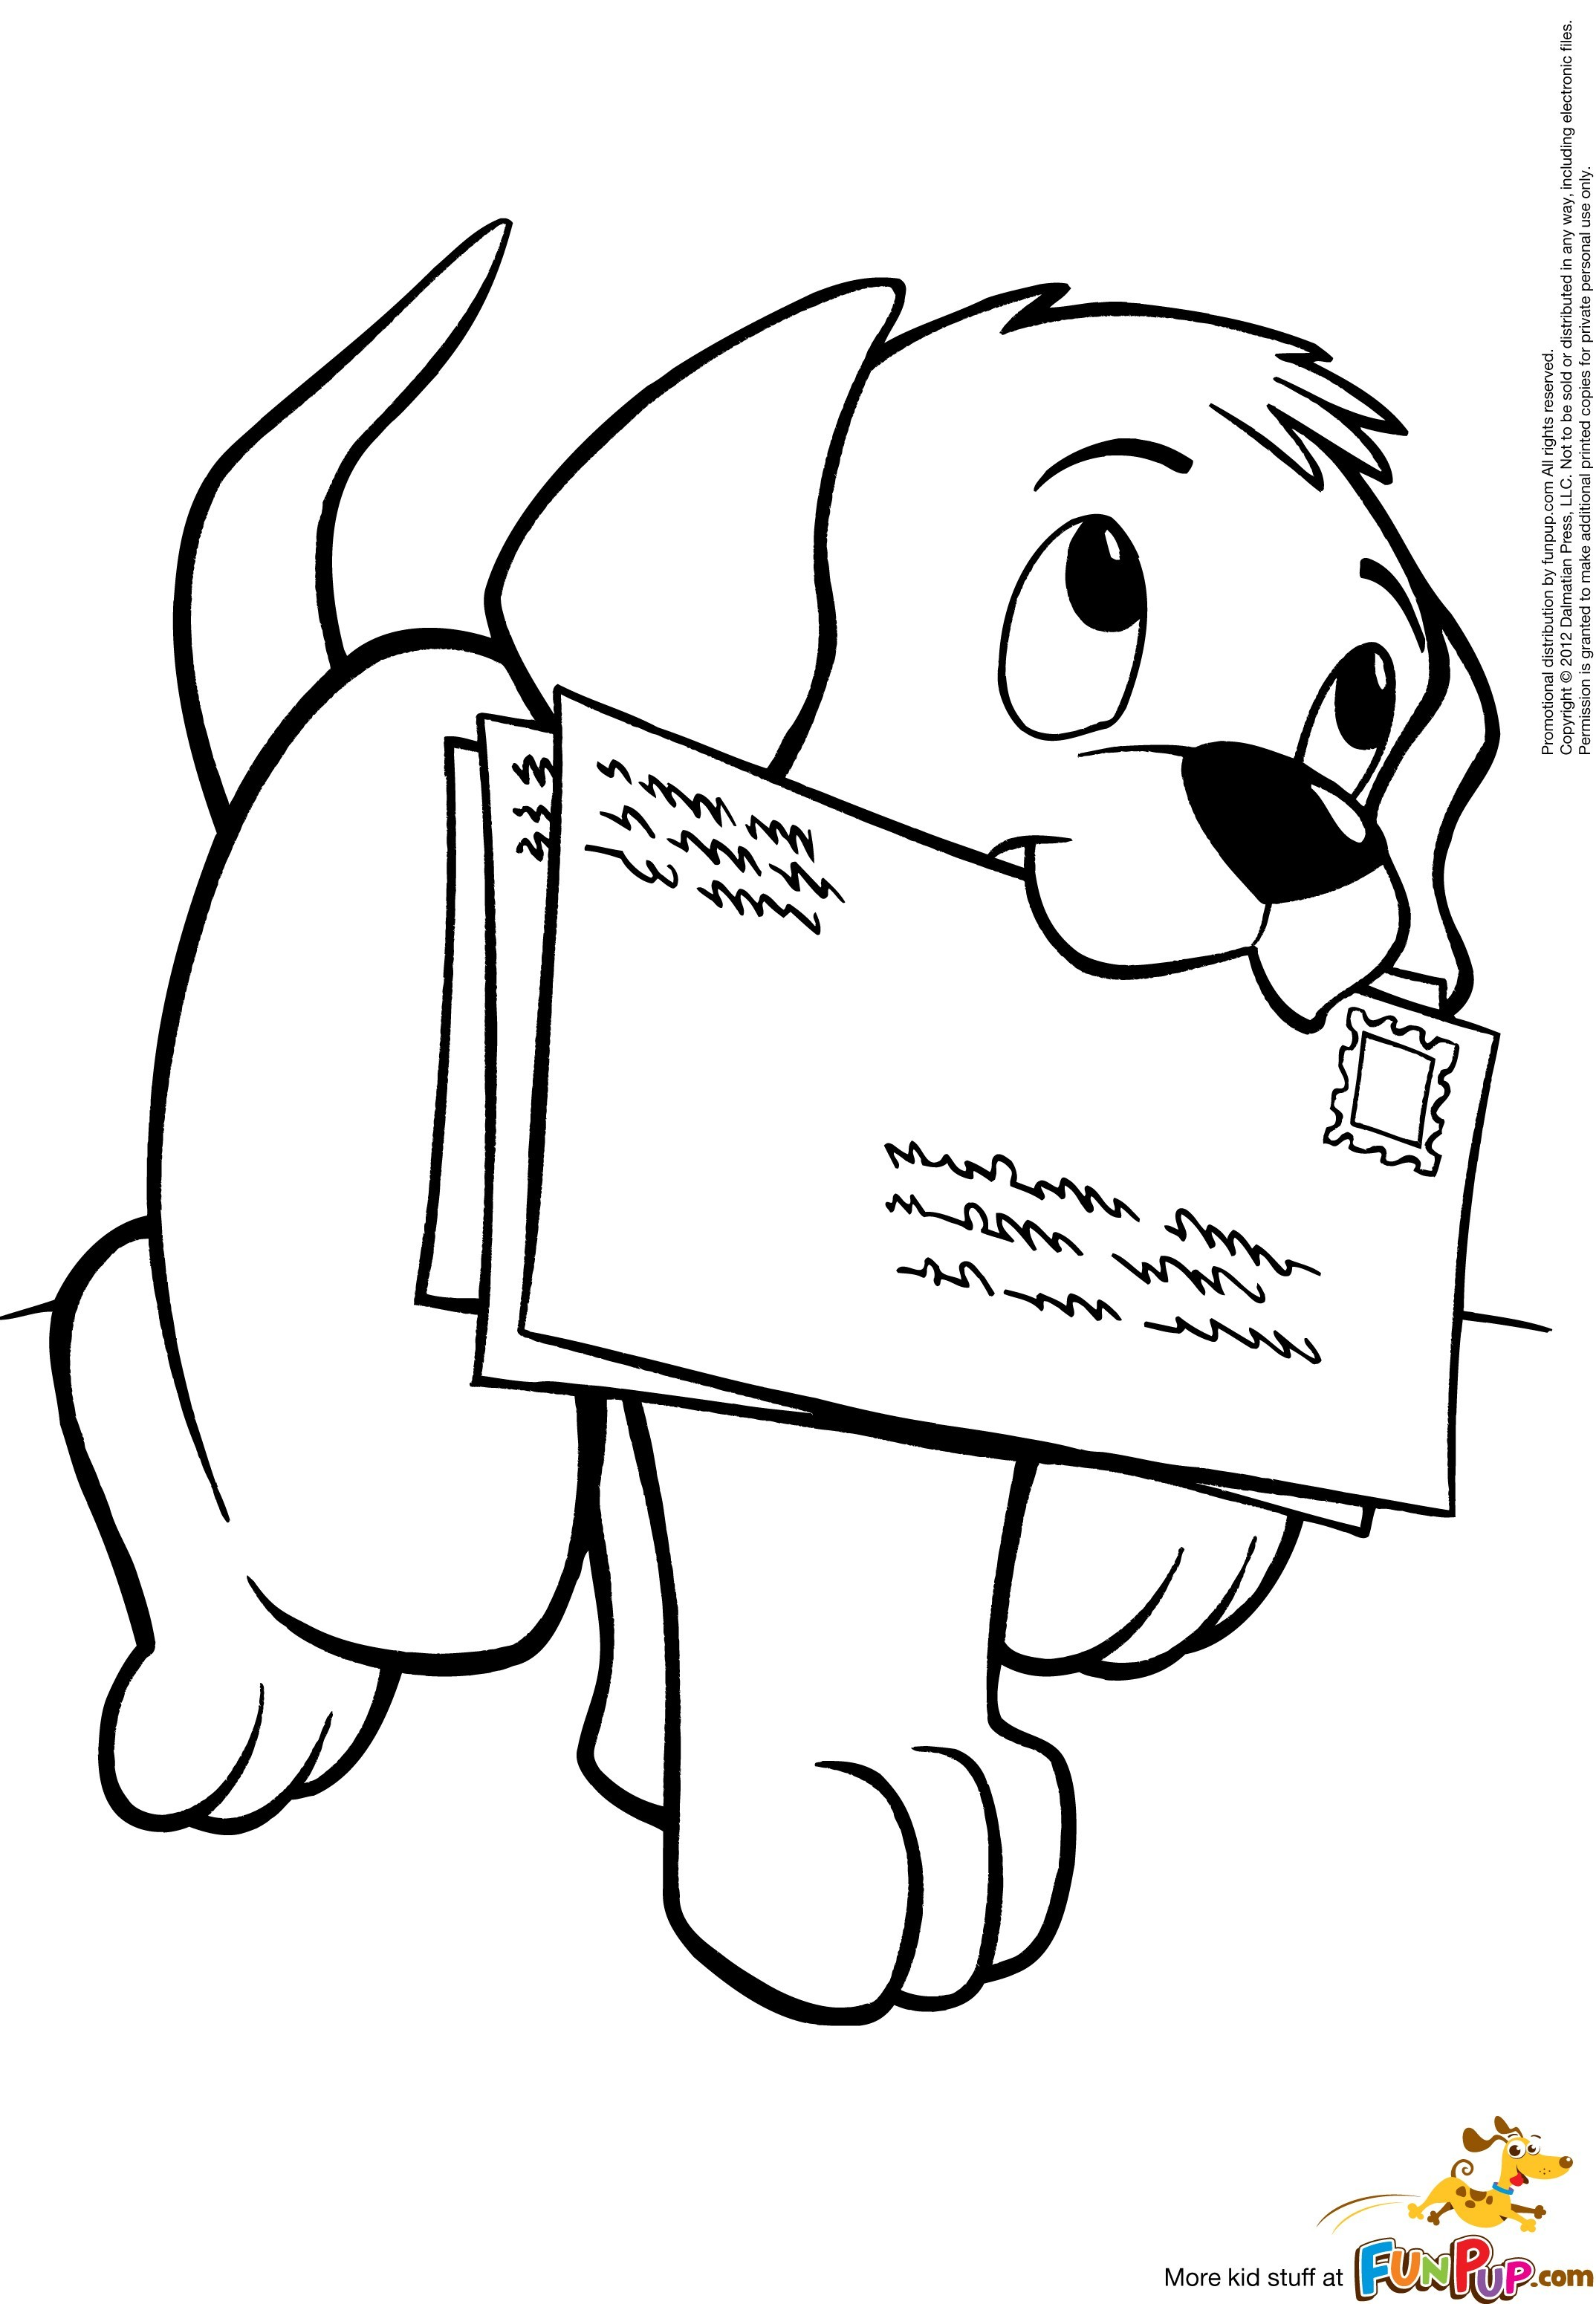 2148x3101 Cute Cartoon Coloring Pages To Print Fresh Printable Puppy Within